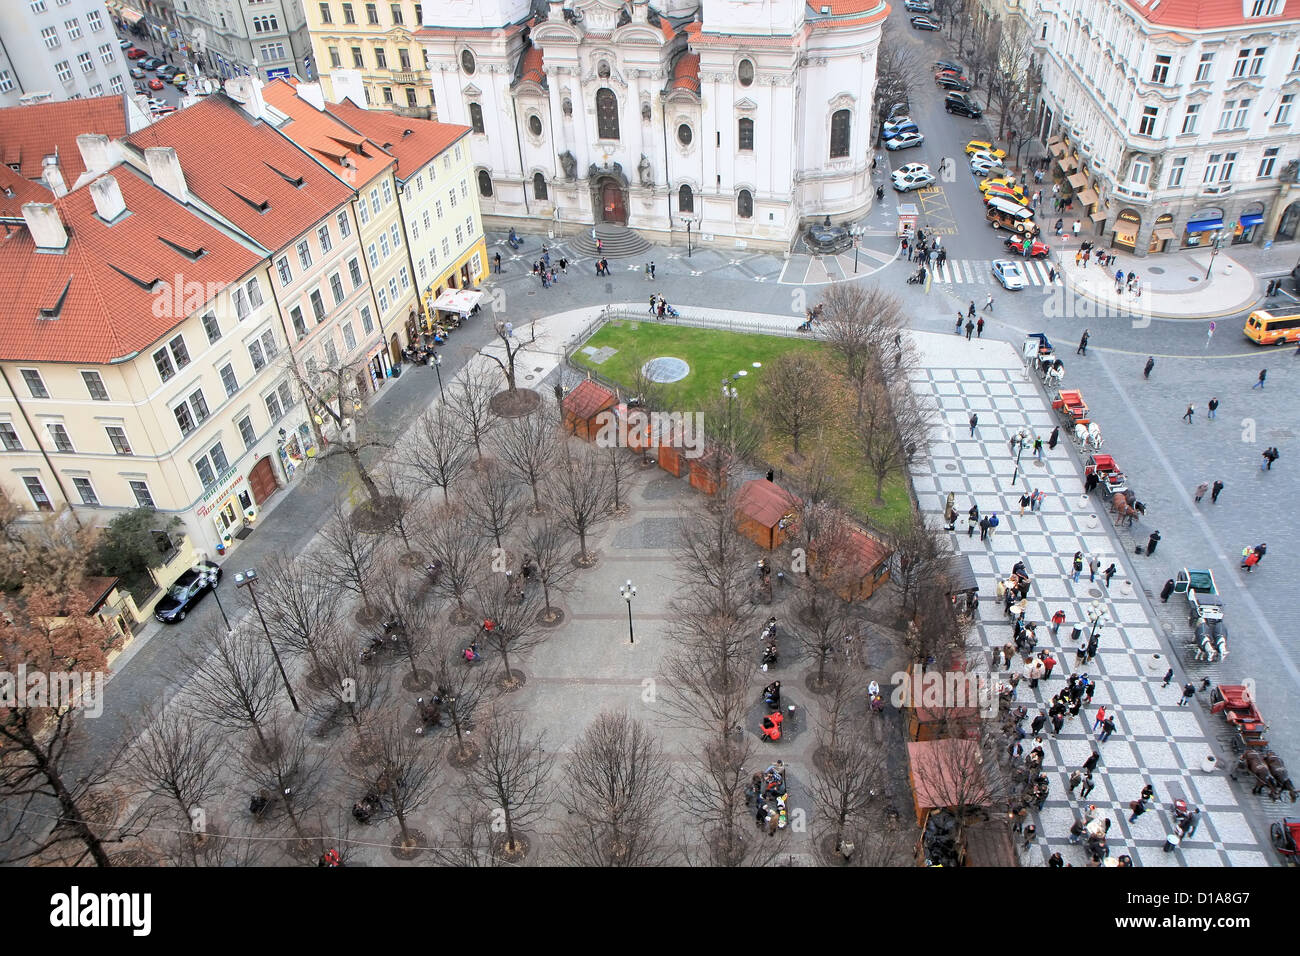 Aerial view of old town square, Prague, Czech Republic - Stock Image